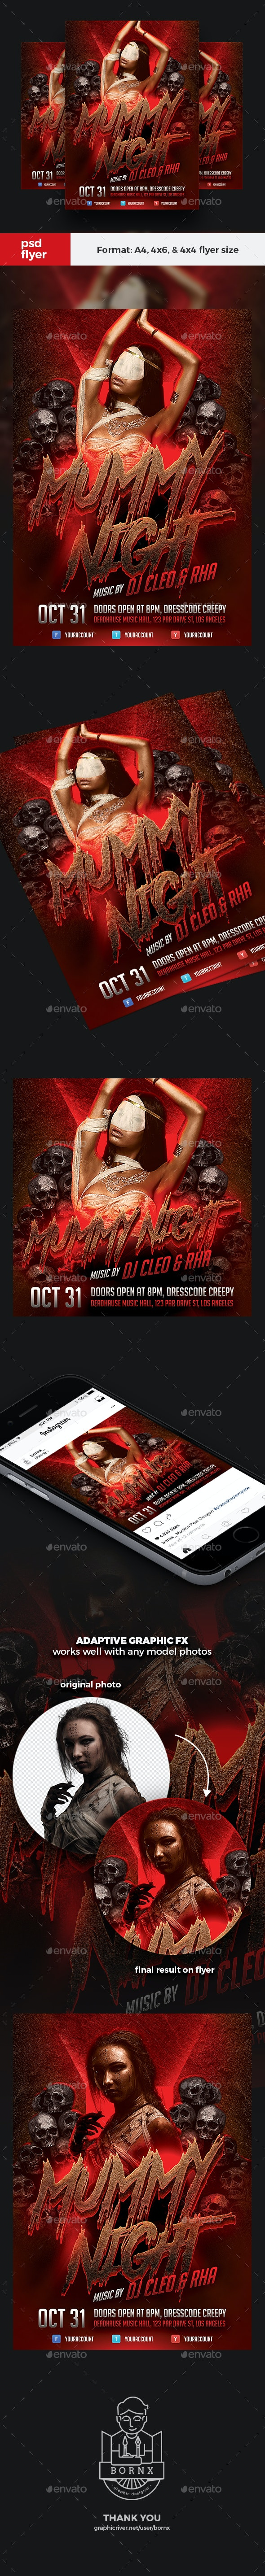 Mummy Halloween Party Flyer - Clubs & Parties Events